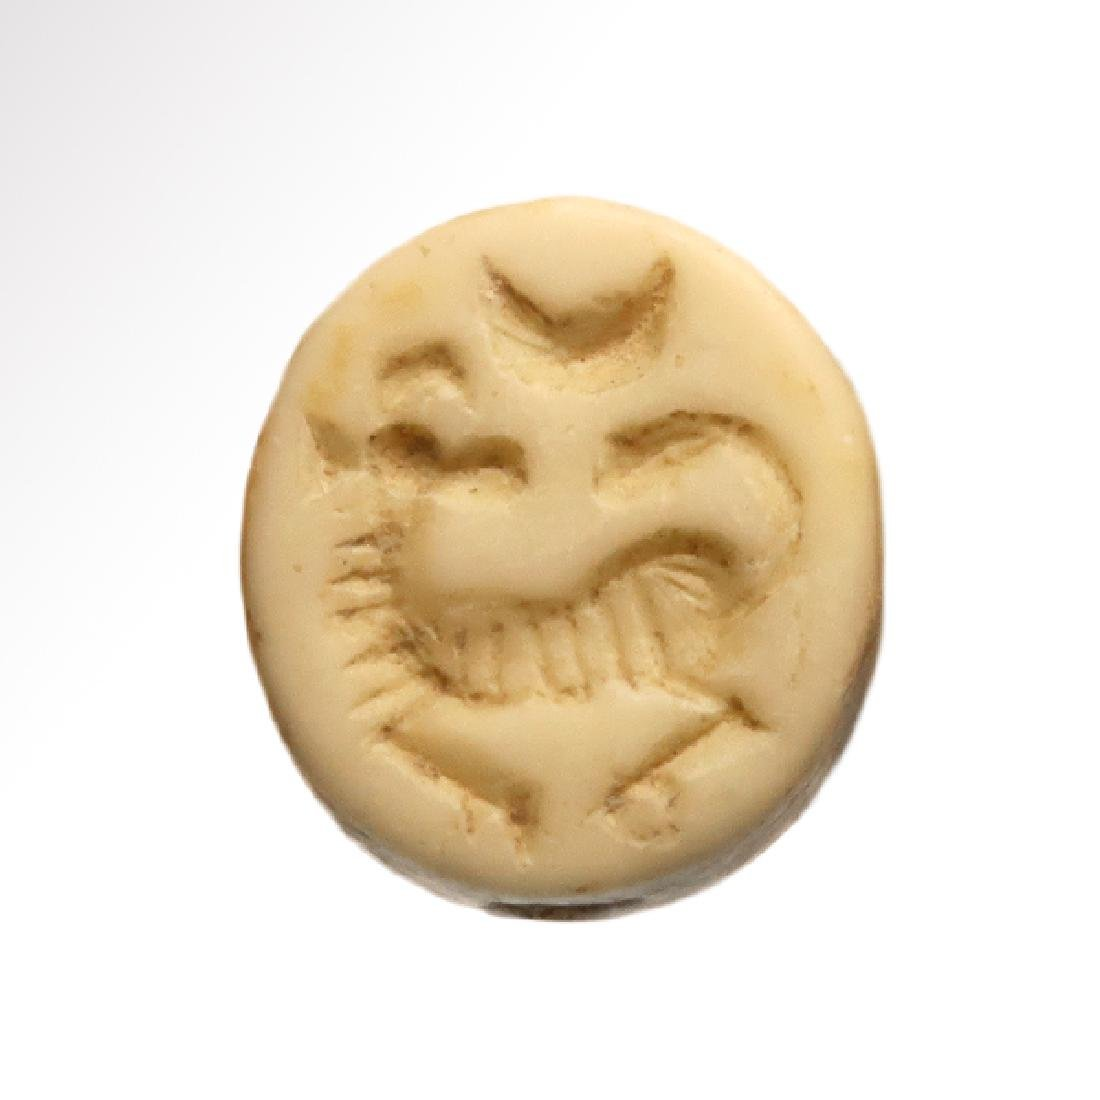 Phoenician Yellow Steatite Seal with Ram, c. 600-500